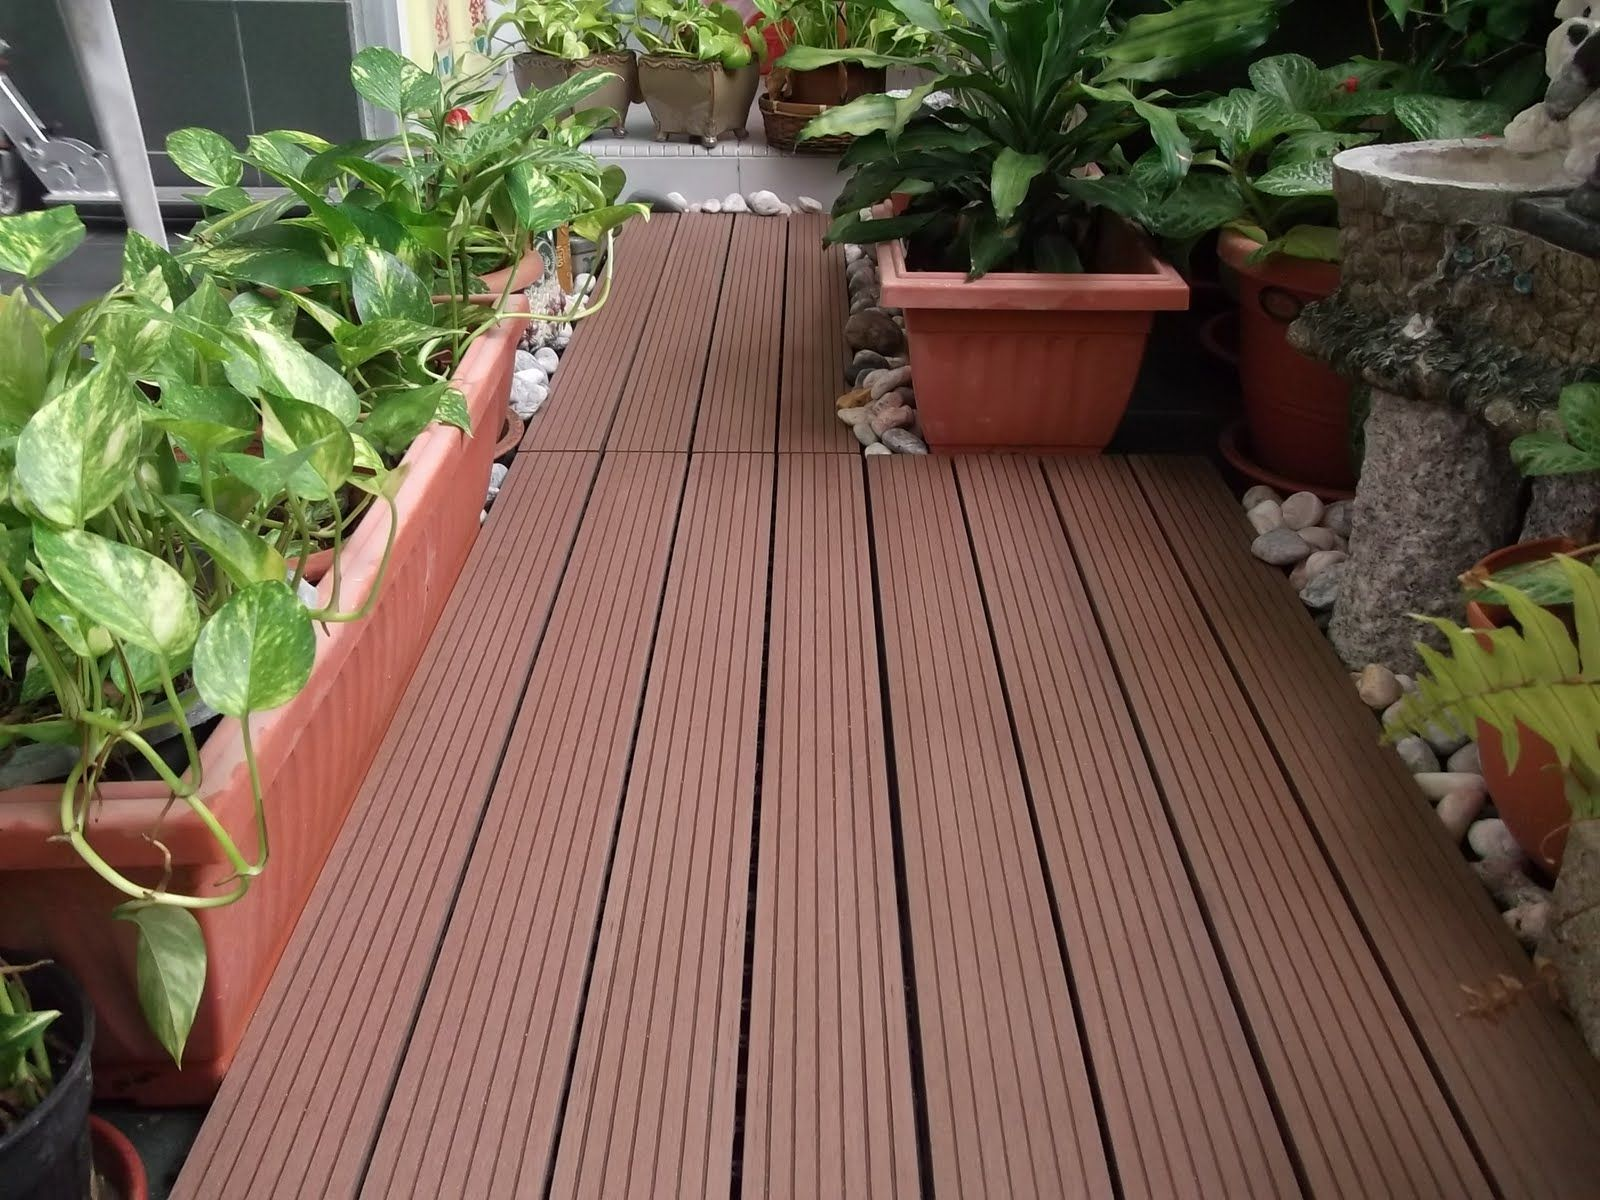 16 Wonderful And Simple Cheapest Flooring Material Gallery Urbandesignprojects Outdoor Wood Decking Patio Flooring Garden Floor